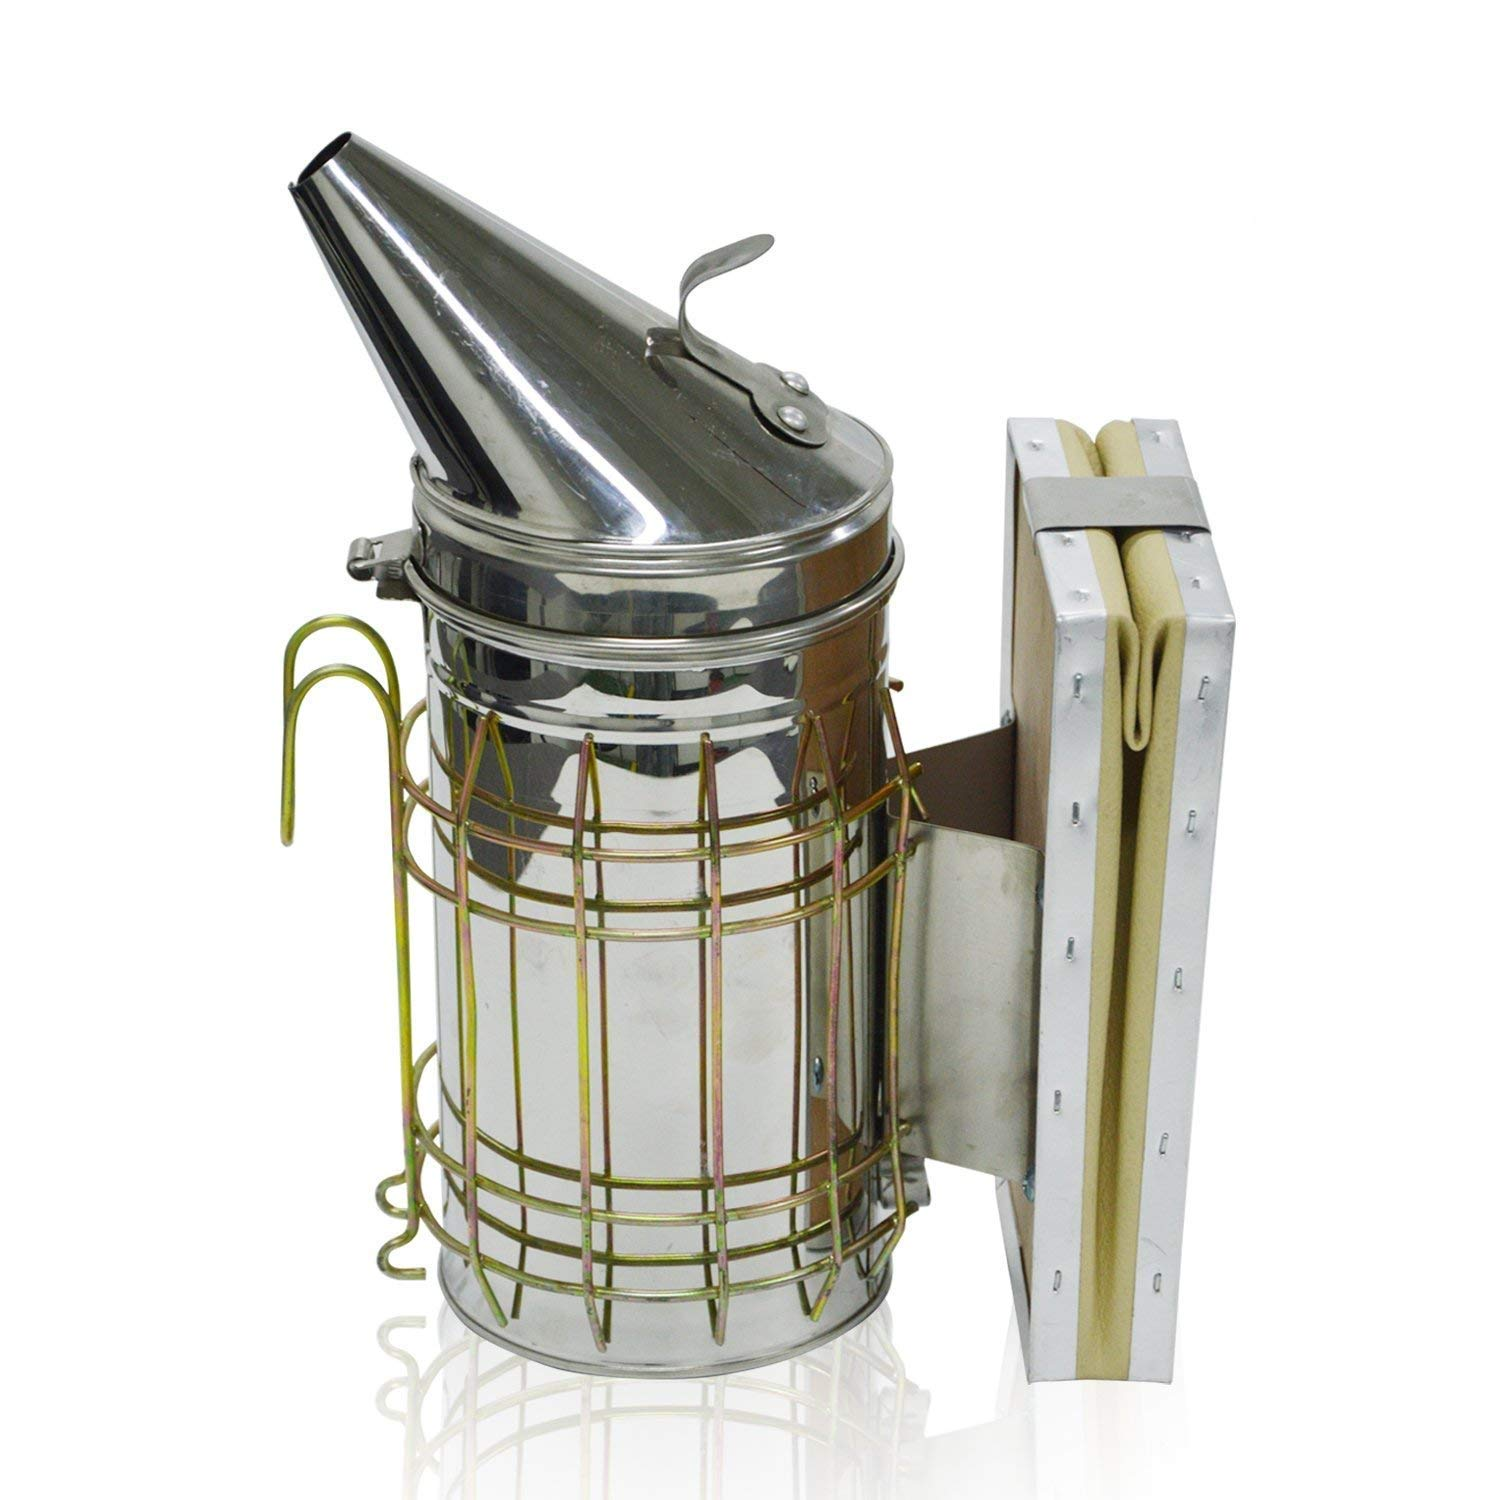 Beehive Smoker by Aspectek - Beekeeping Tools Equipment - Stainless Steel with Heat Shield Protection (11 x 8.5 inch) HR195